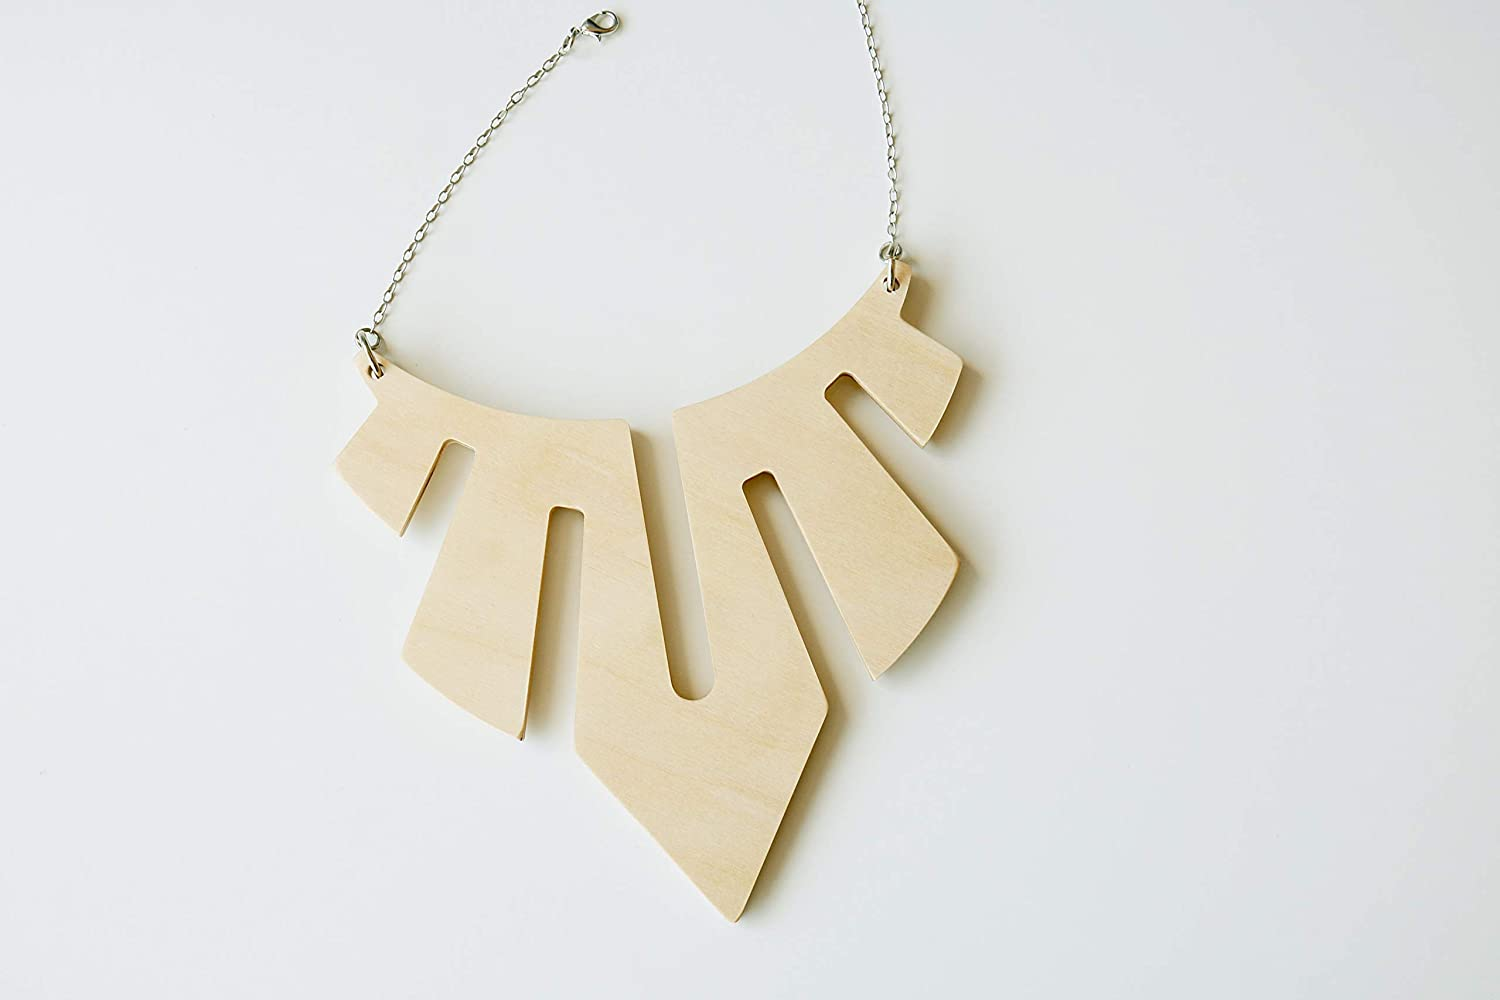 Statement necklace Wooden necklace Bold necklace Wood Abstract necklace Statement wooden necklace Big necklace